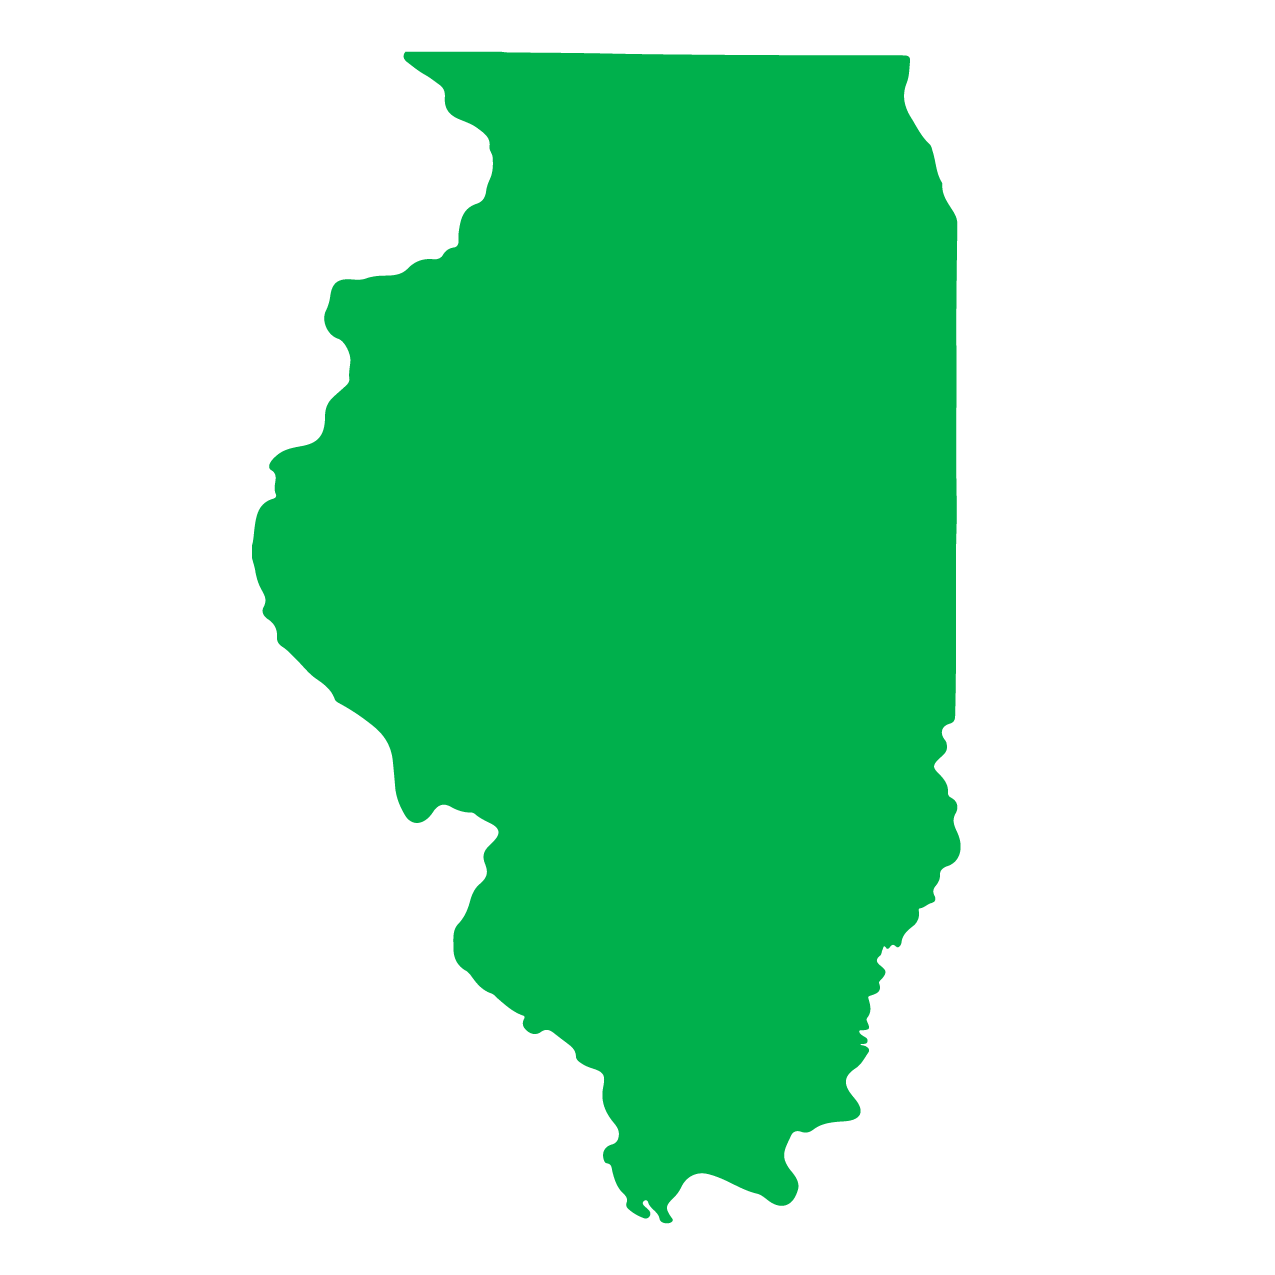 States_Illinois.png